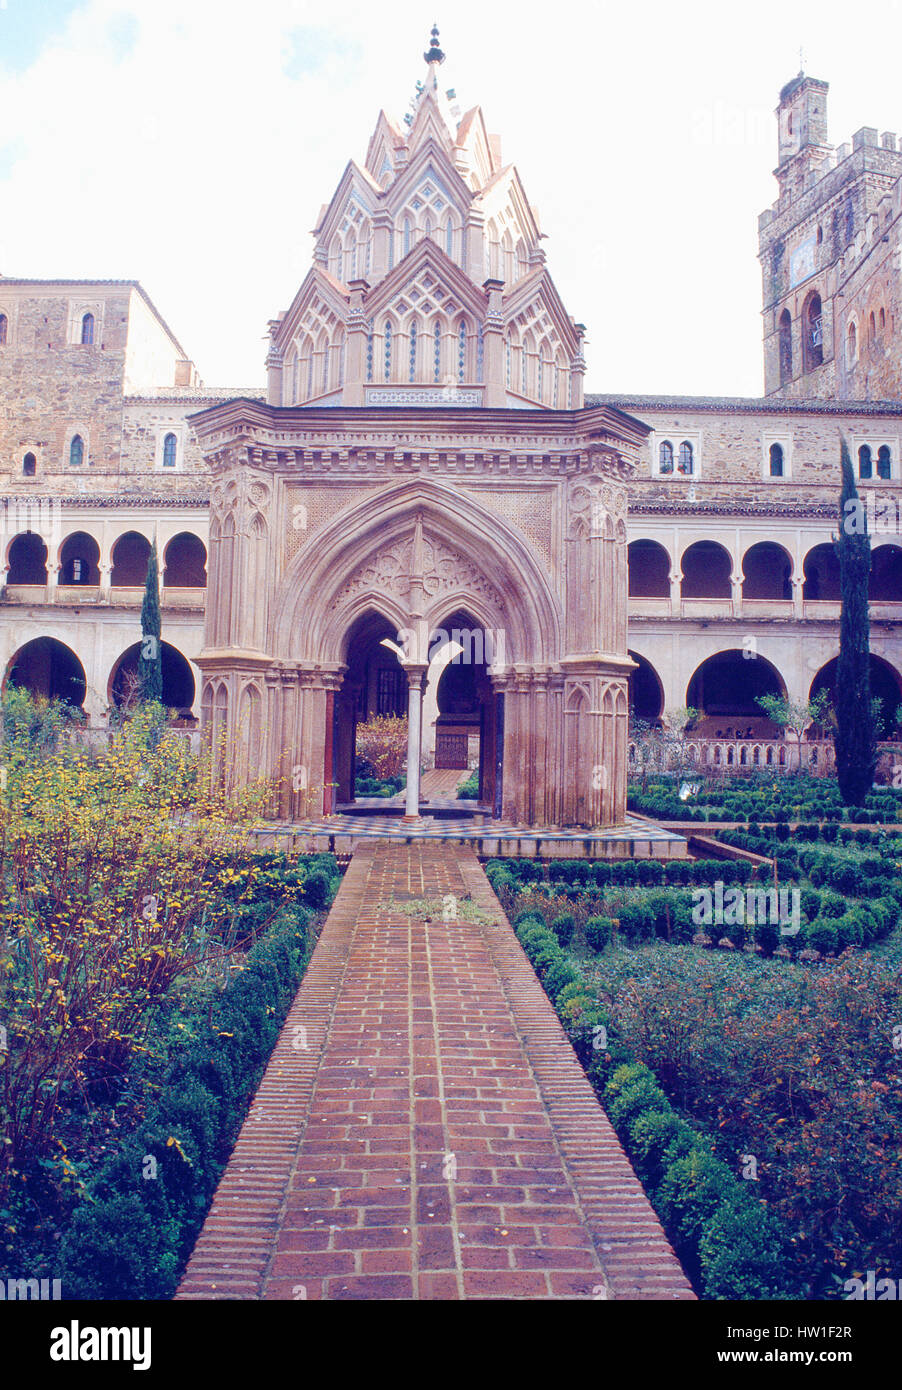 Mudejar cloister. Monastery, Guadalupe, Caceres province, Extremadura, Spain. - Stock Image